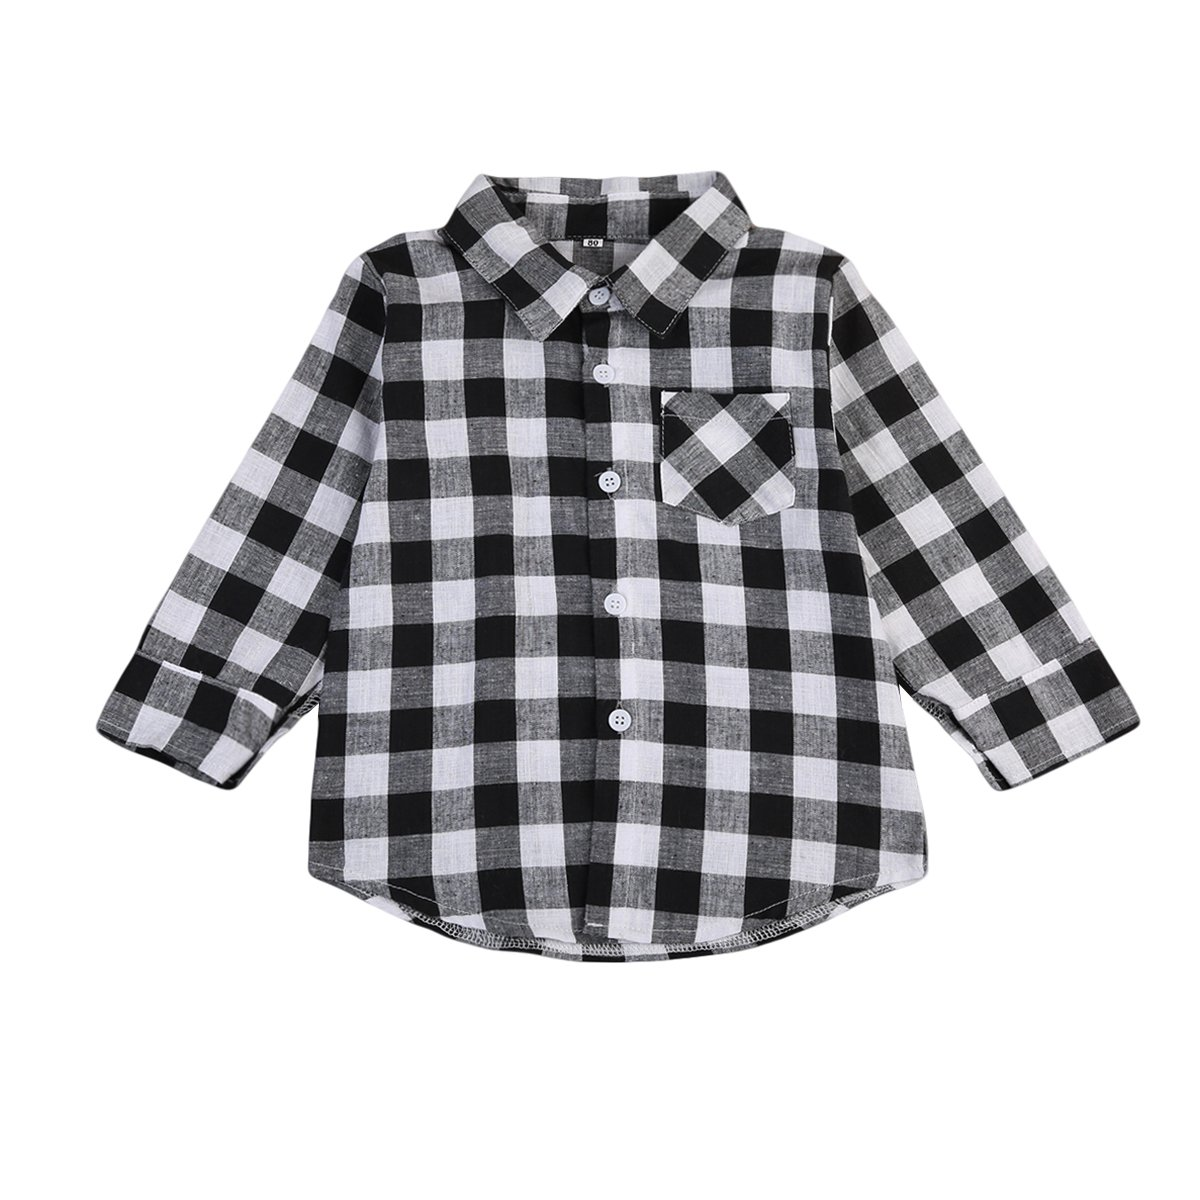 Imcute Toddler Baby Boys Girls Long Sleeve Casual Grey Plaid Shirt Top Autumn Winter